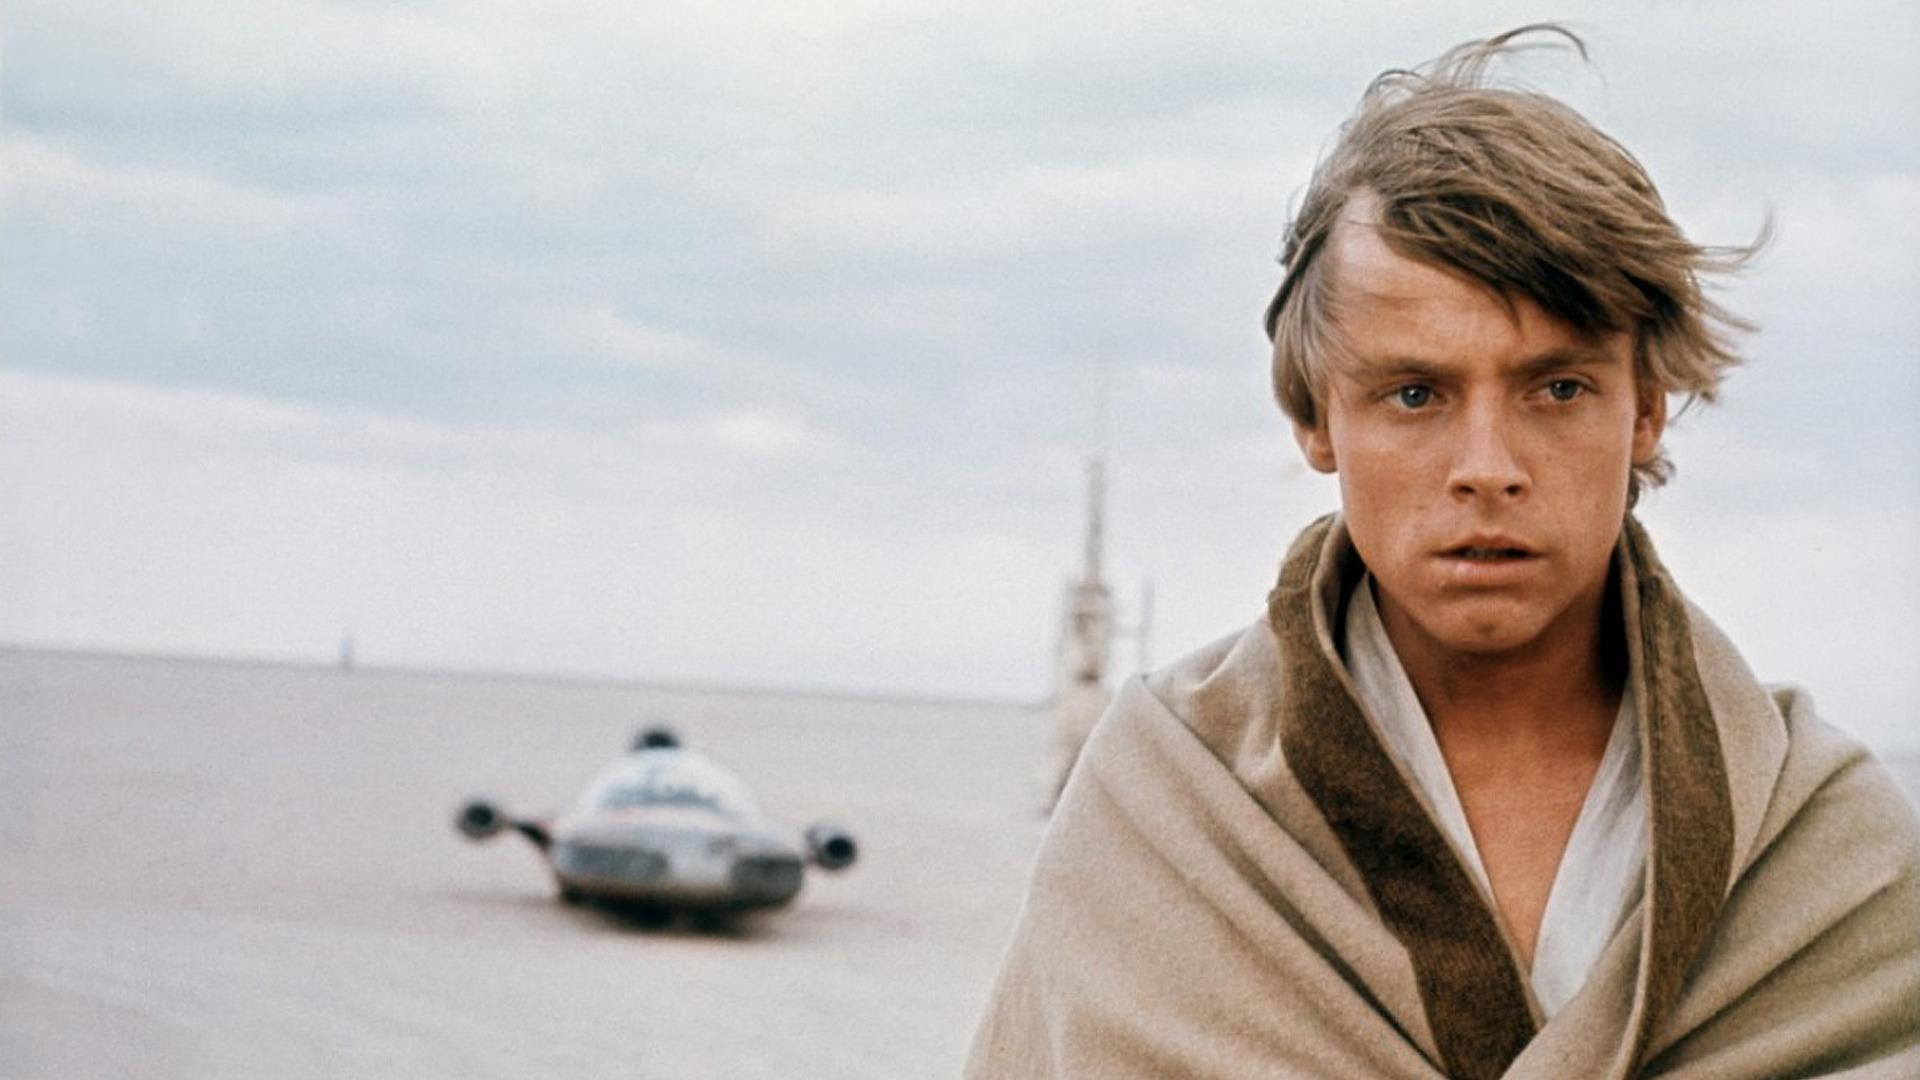 http://www.themarysue.com/wp-content/uploads/2015/08/Star-Wars-Luke-Skywalker-Tatooine.jpg